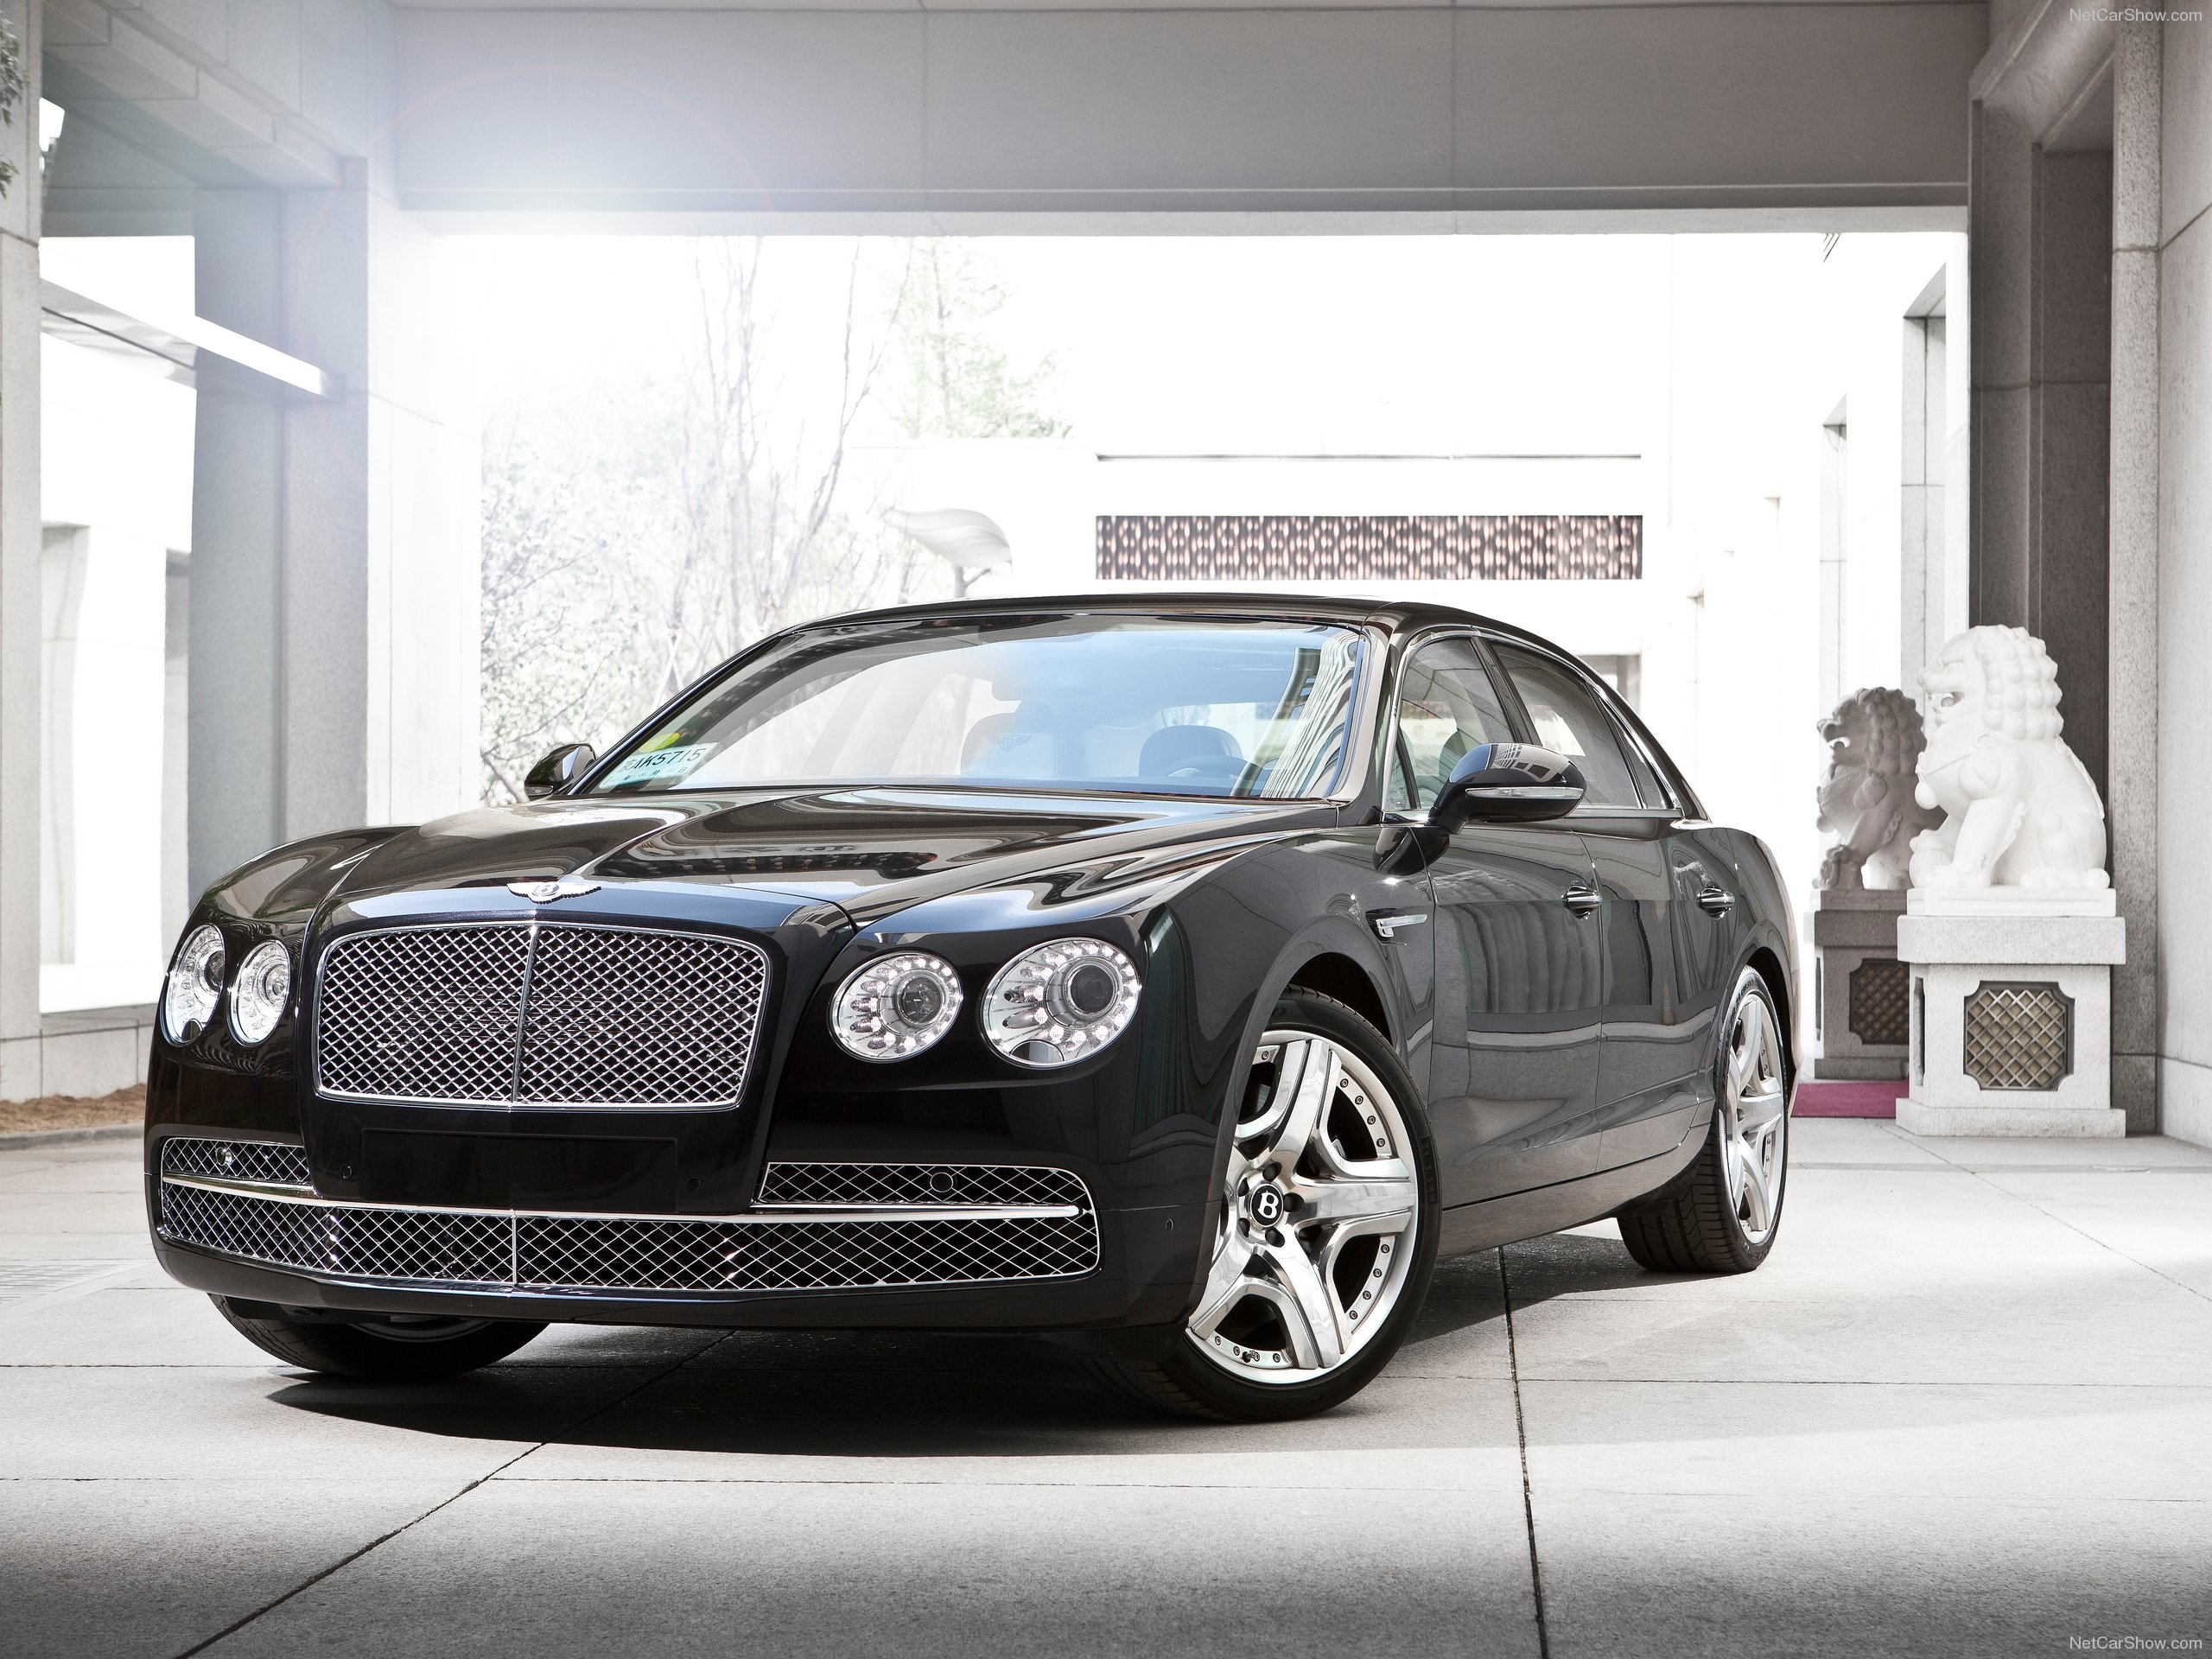 2014 bentley flying spur photo wallpaper highqualitycarpics 2560x1920